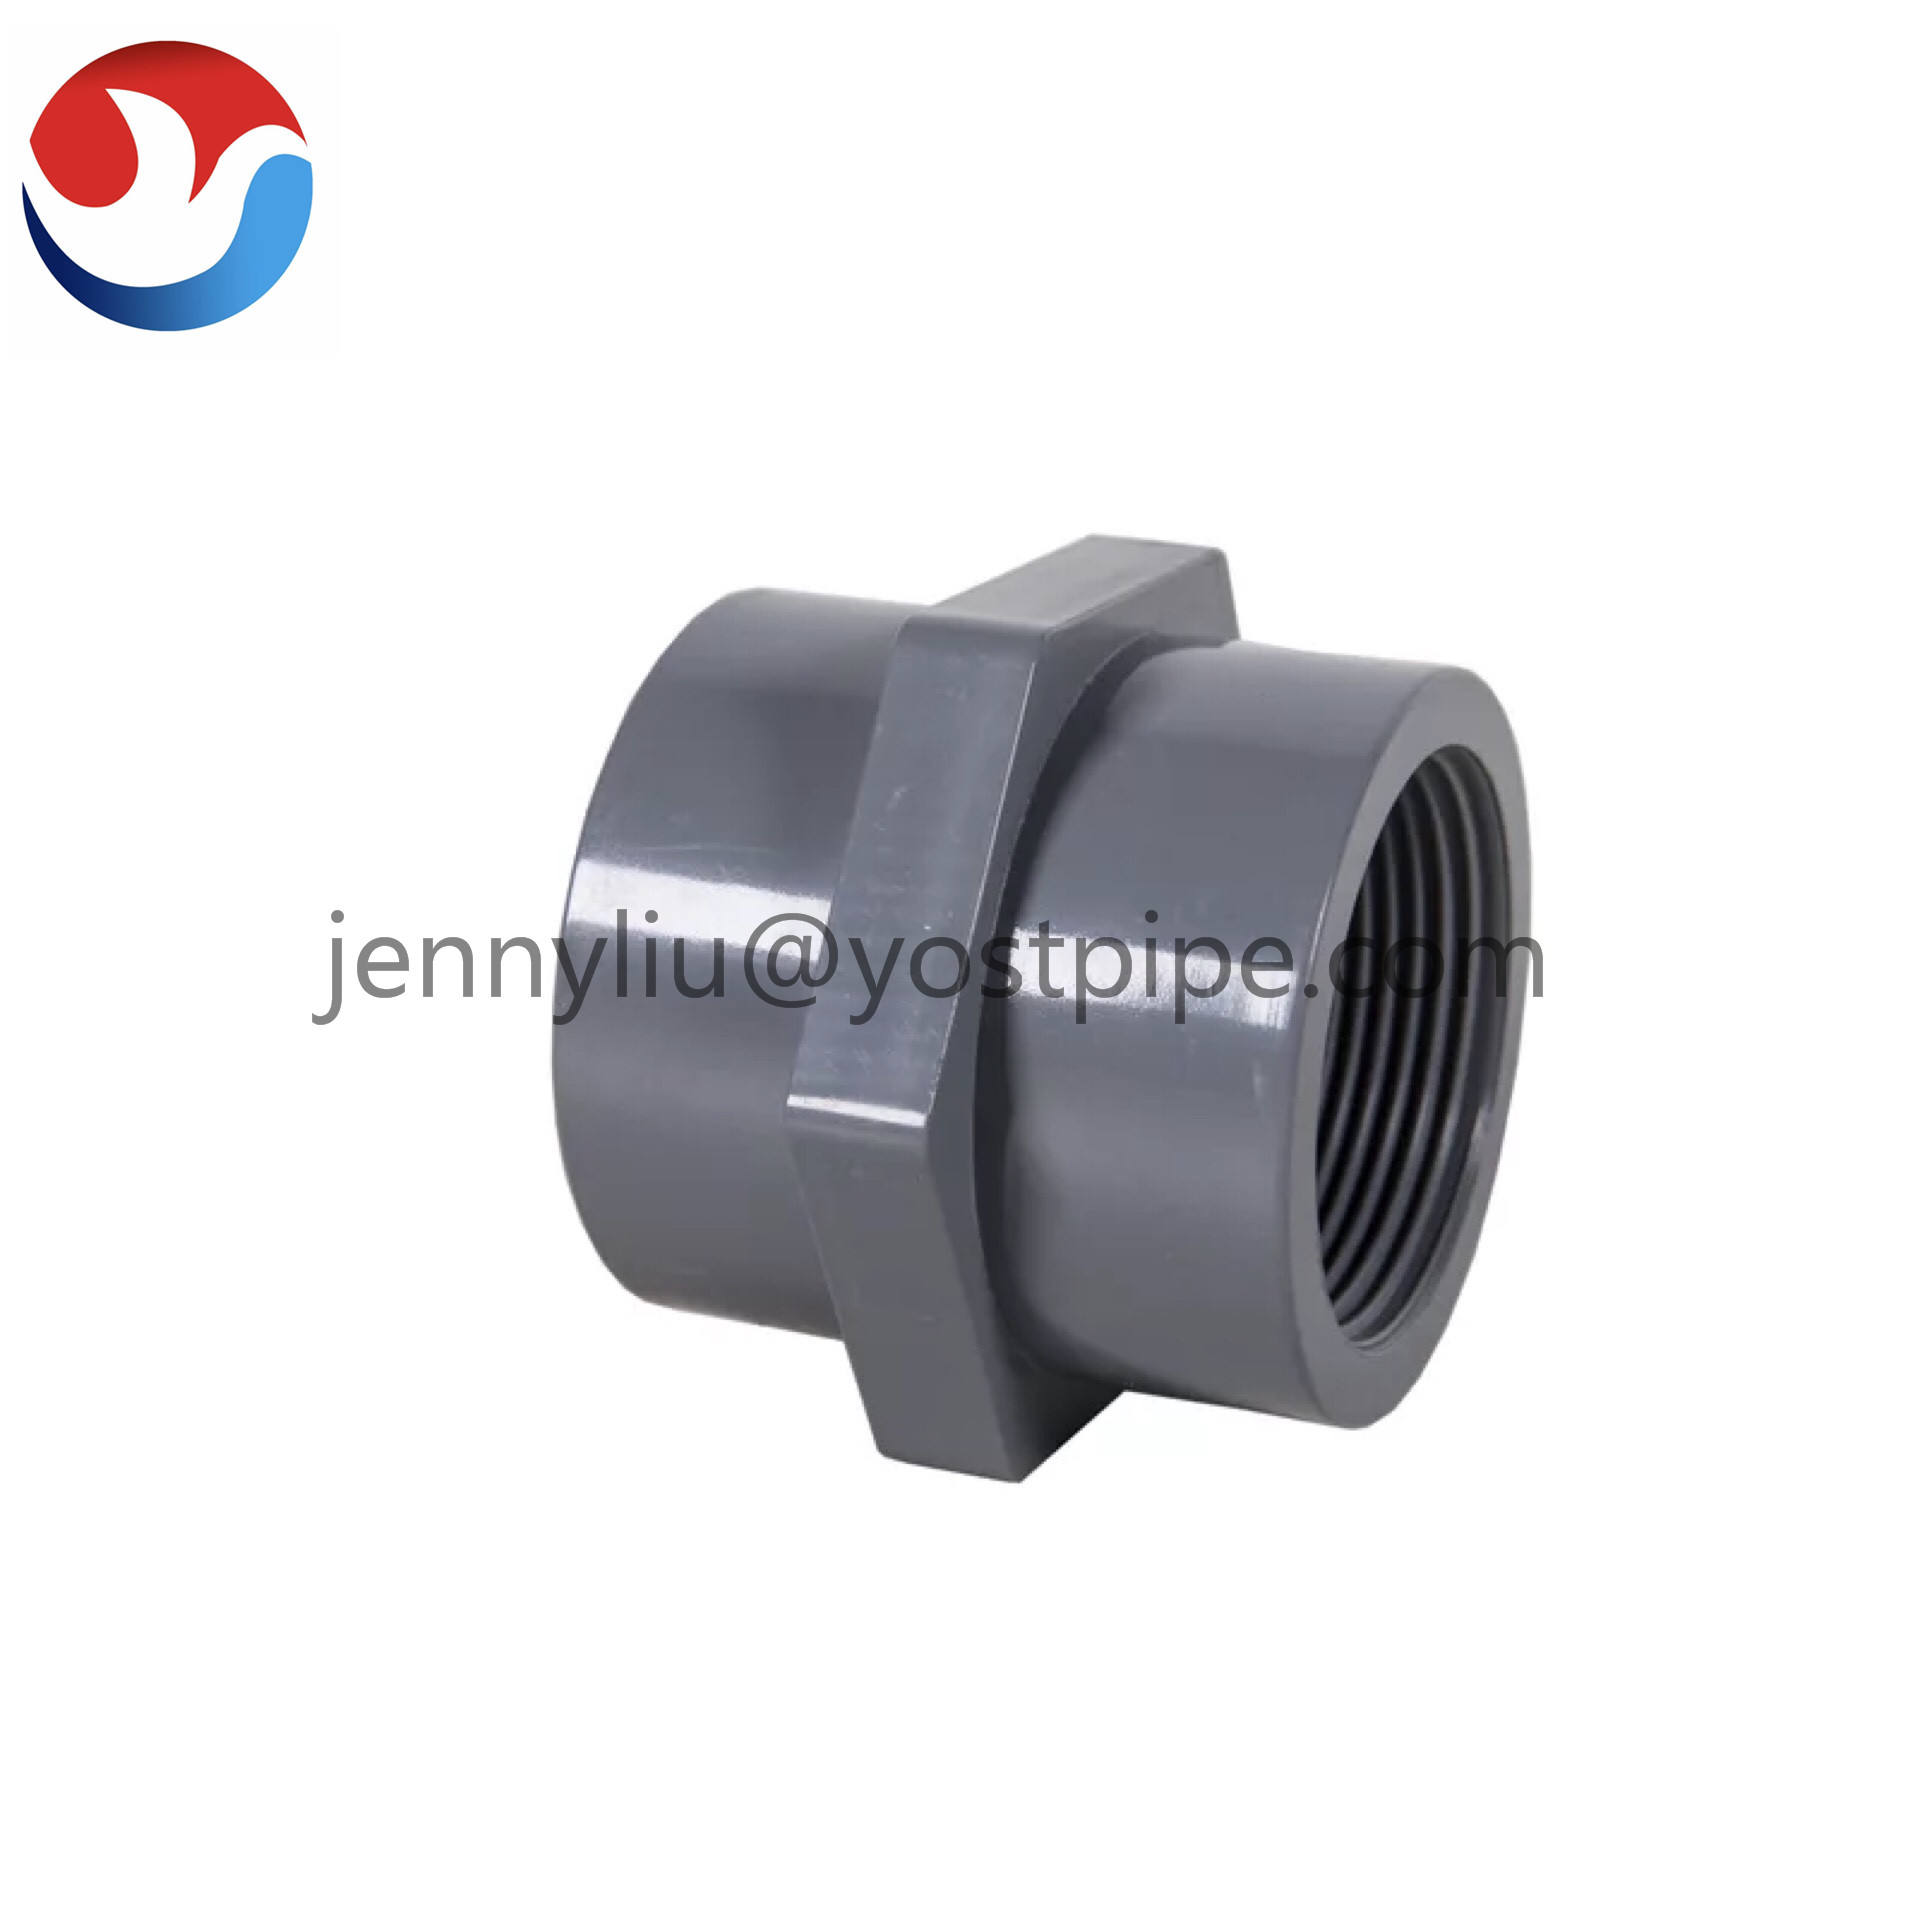 PVC Pipe Fitting for Potable Water Supply 200mm 8 inch Butterfly Valve Plastic Male Adaptor